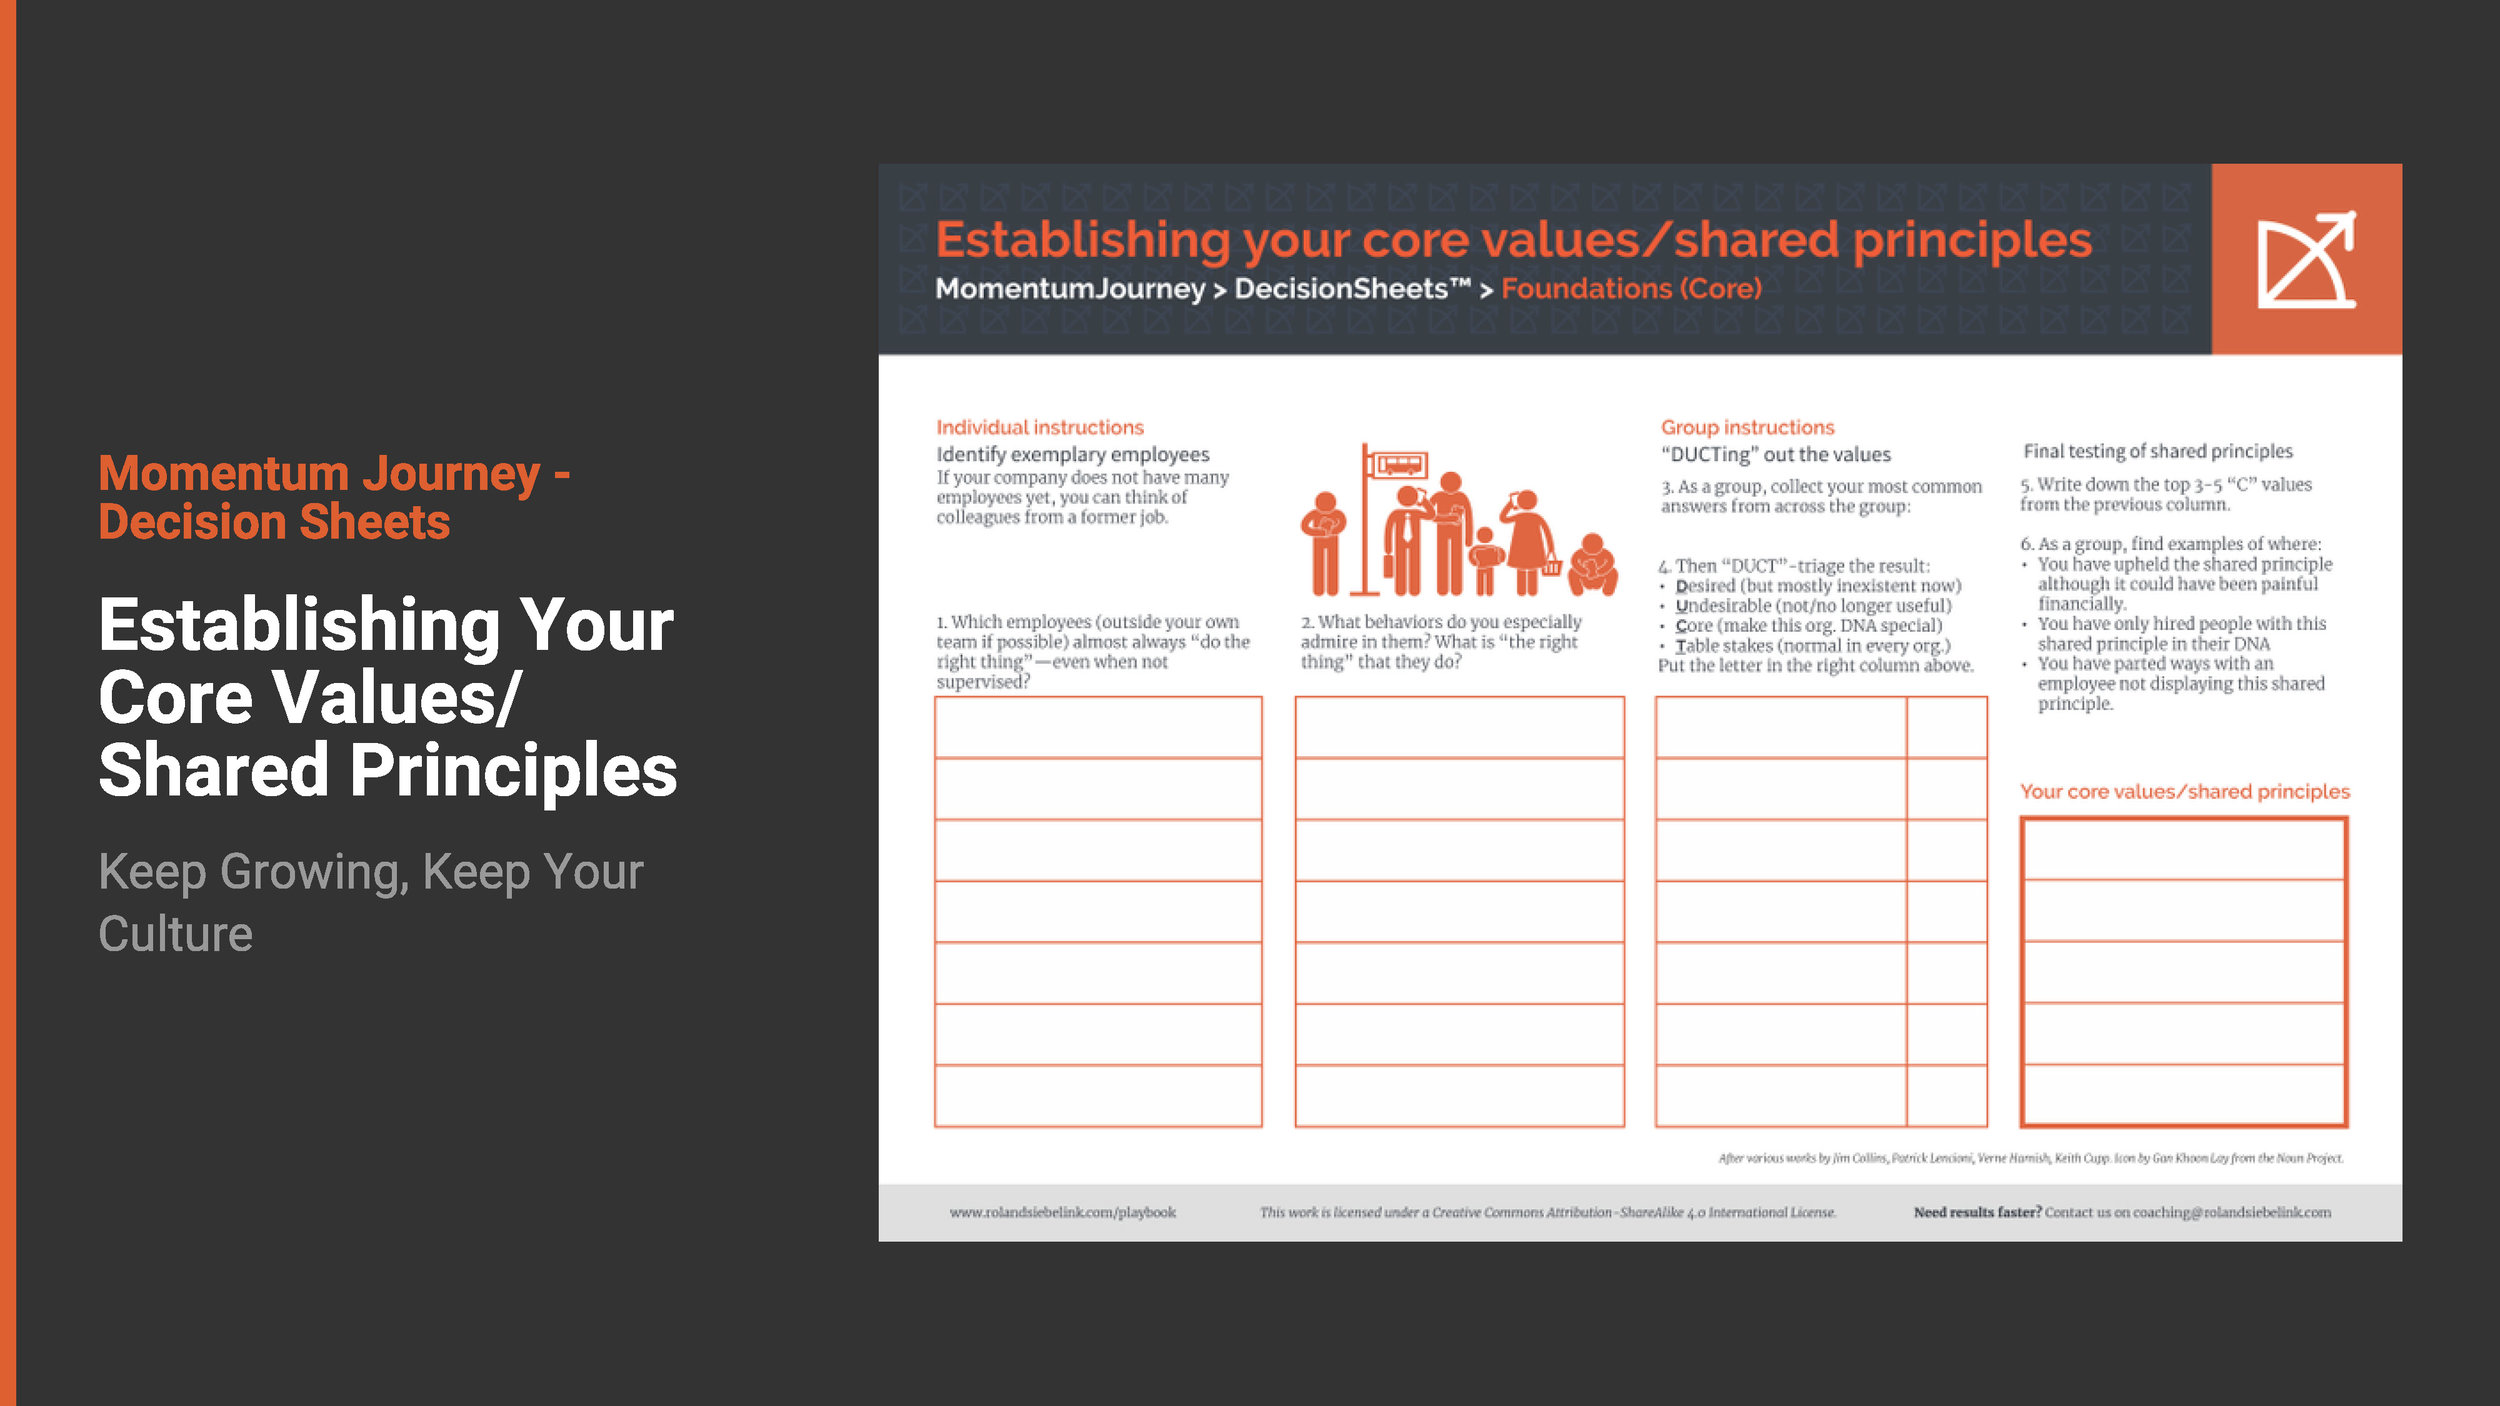 096_Establishing your Core Values_Shared Principles_Page_6.jpg